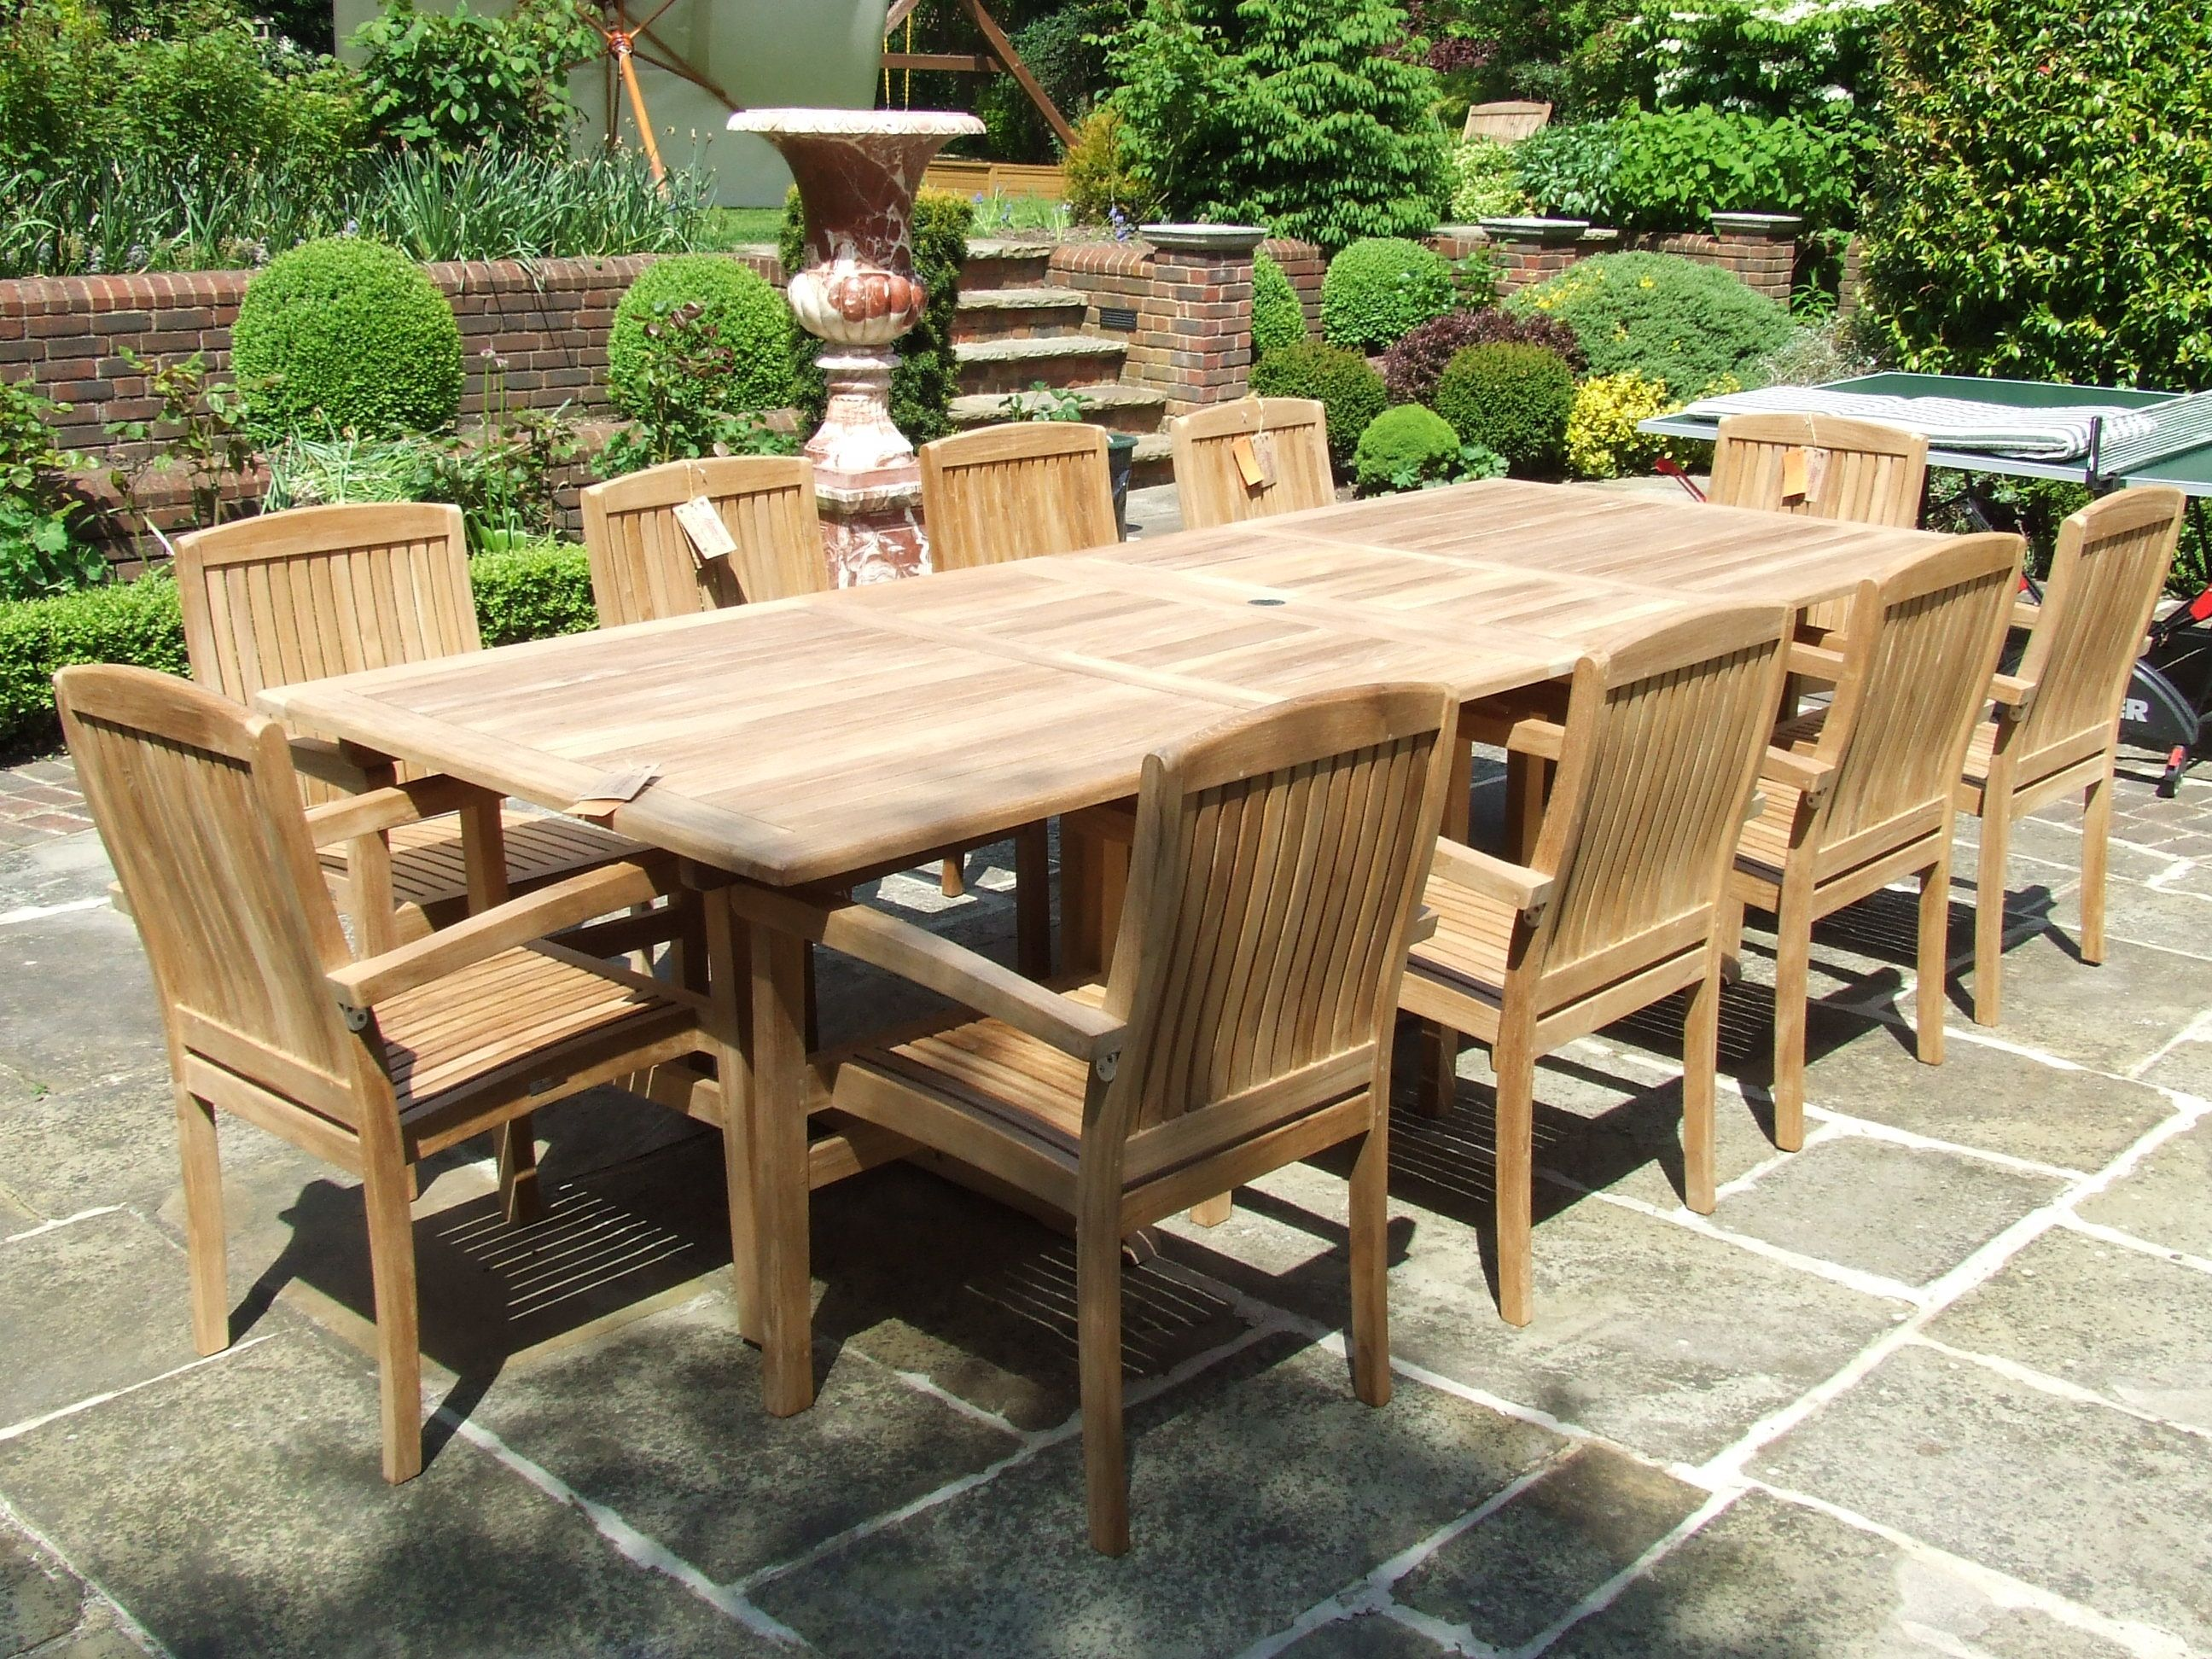 Outdoor Table And Chair Set Sale Patio Dining Sets On Sale Canada Cheap Outside Table And Wooden Garden Table Wooden Outdoor Furniture Outdoor Farmhouse Table